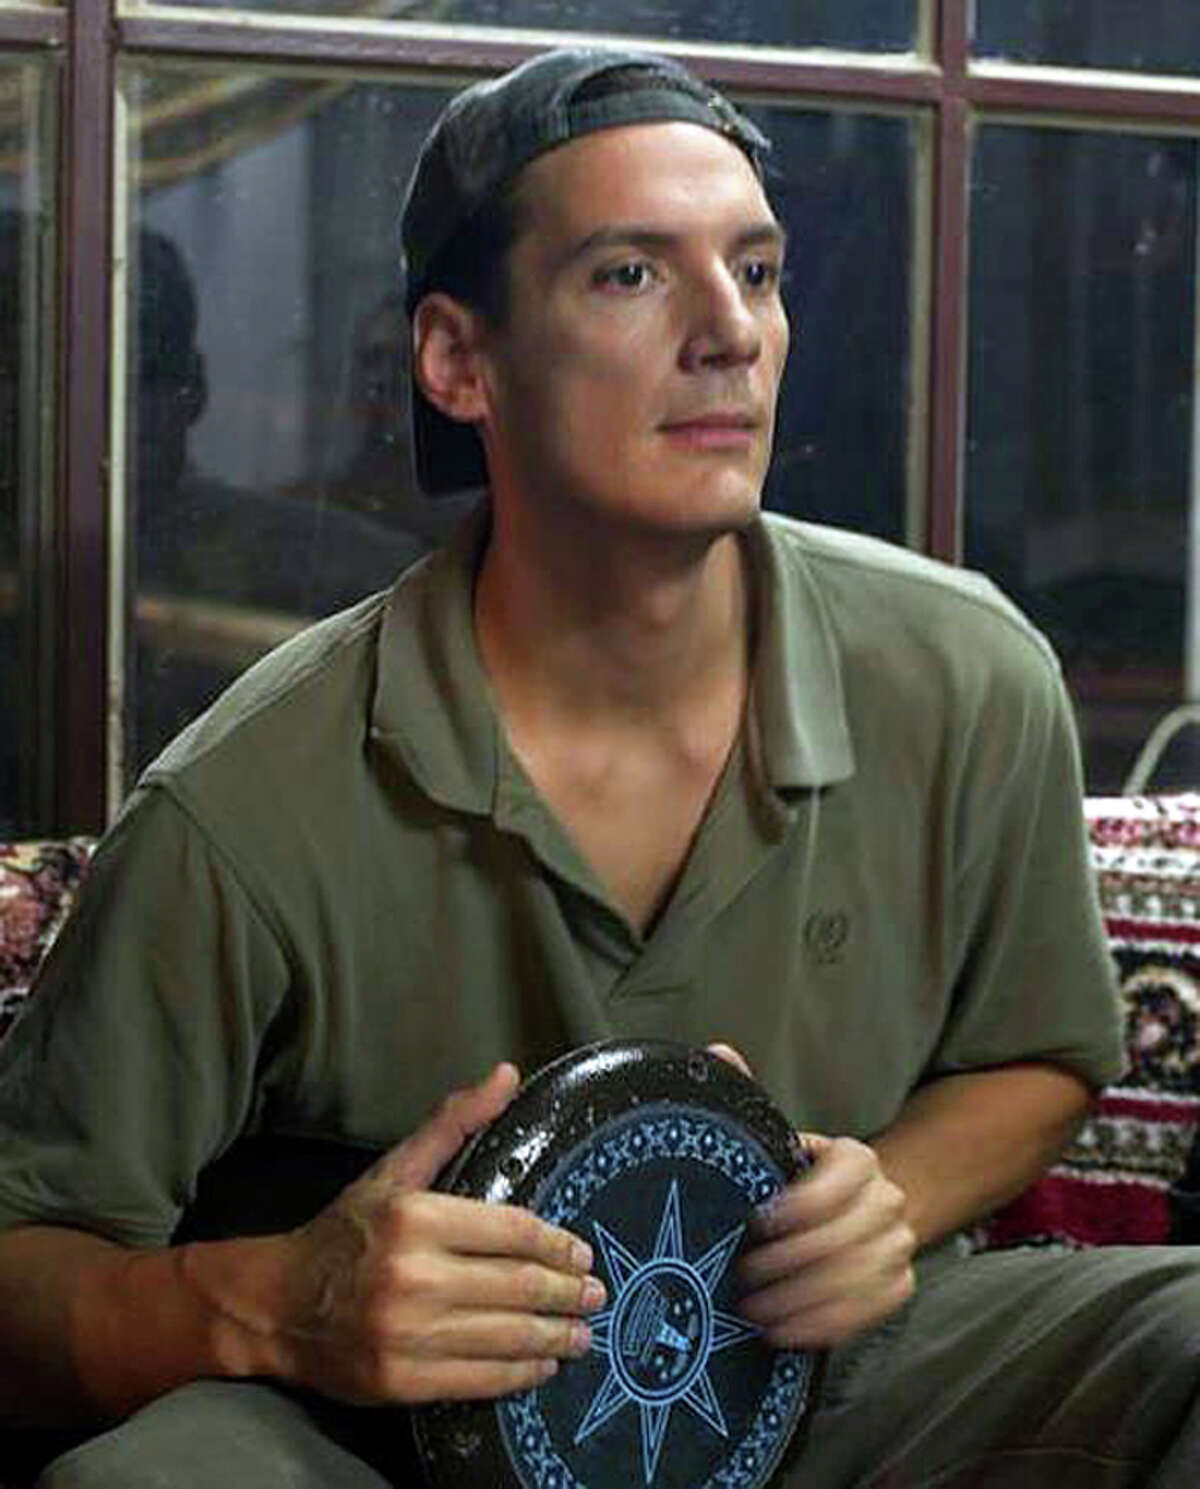 A picture taken in July 2012 shows freelance photographer Austin Tice in an undisclosed location. The American journalist has been missing in Syria since August 2012. AFP PHOTO/JAMES LAWLER DUGGANJAMES LAWLER DUGGAN/AFP/GettyImages